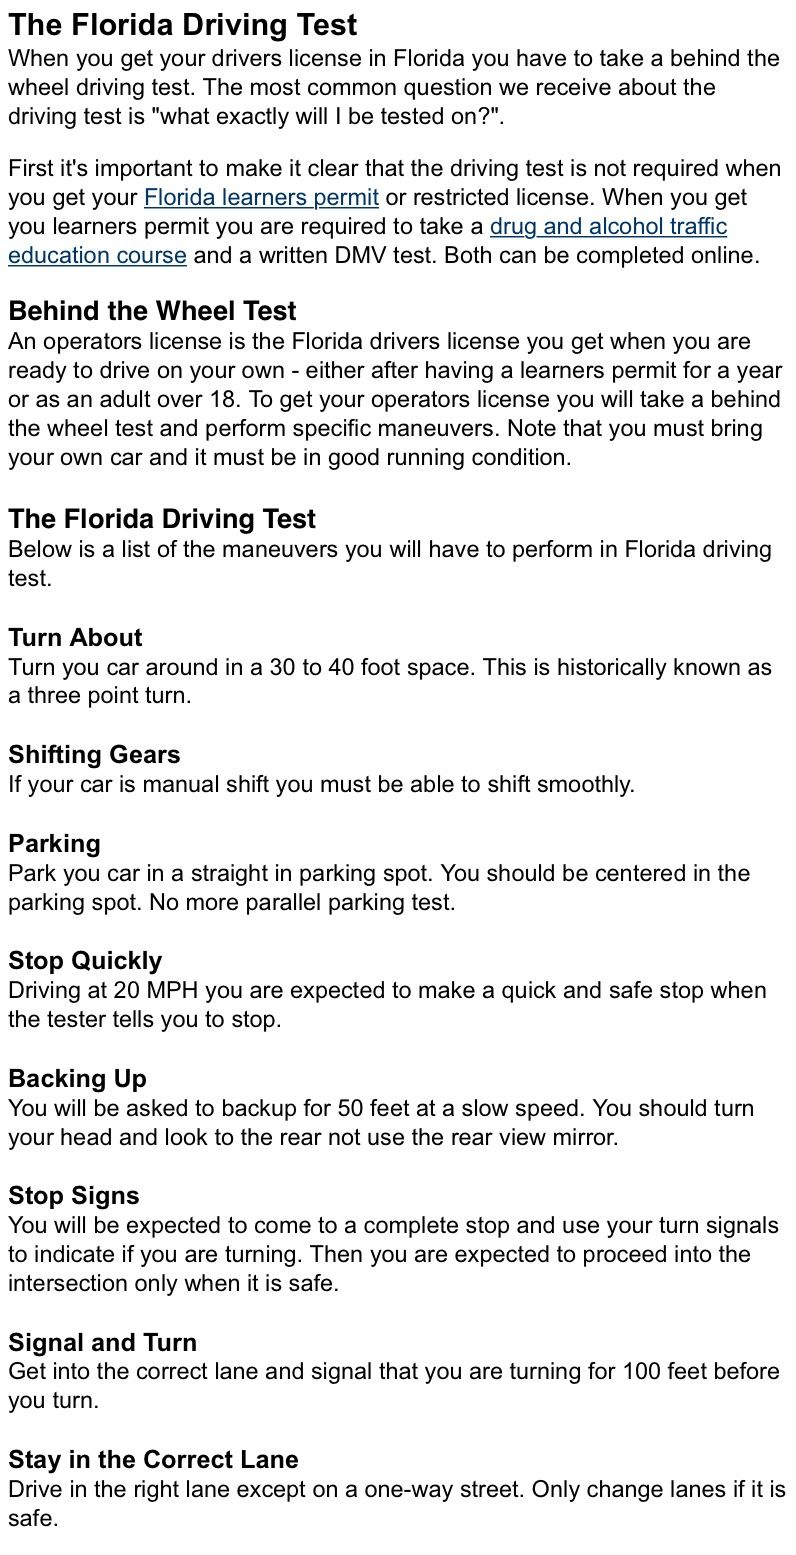 Can I Take My Drivers License Test Online In Florida